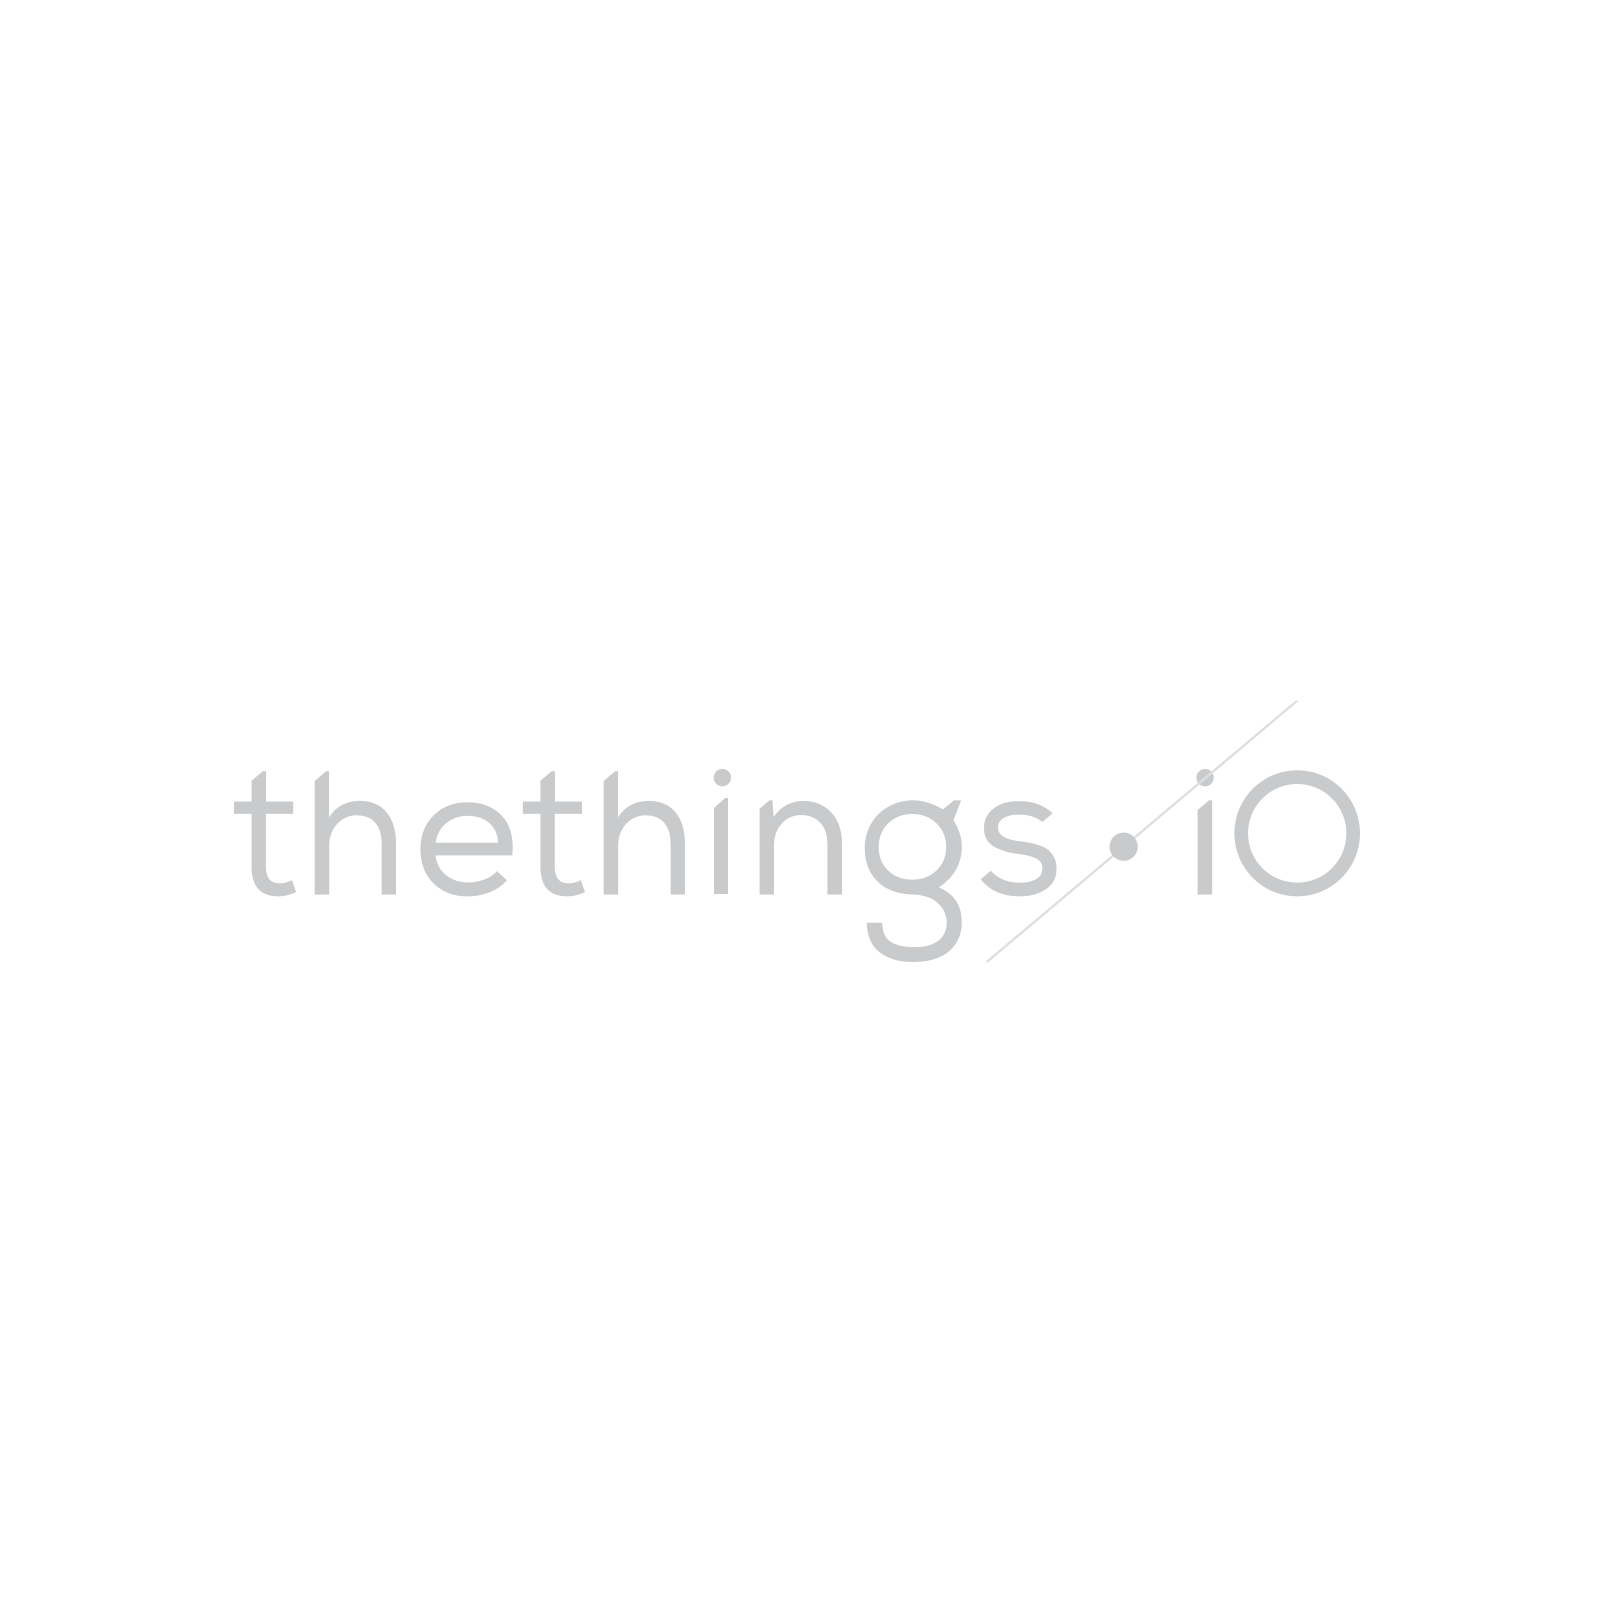 Copy of TheThings IO Logo